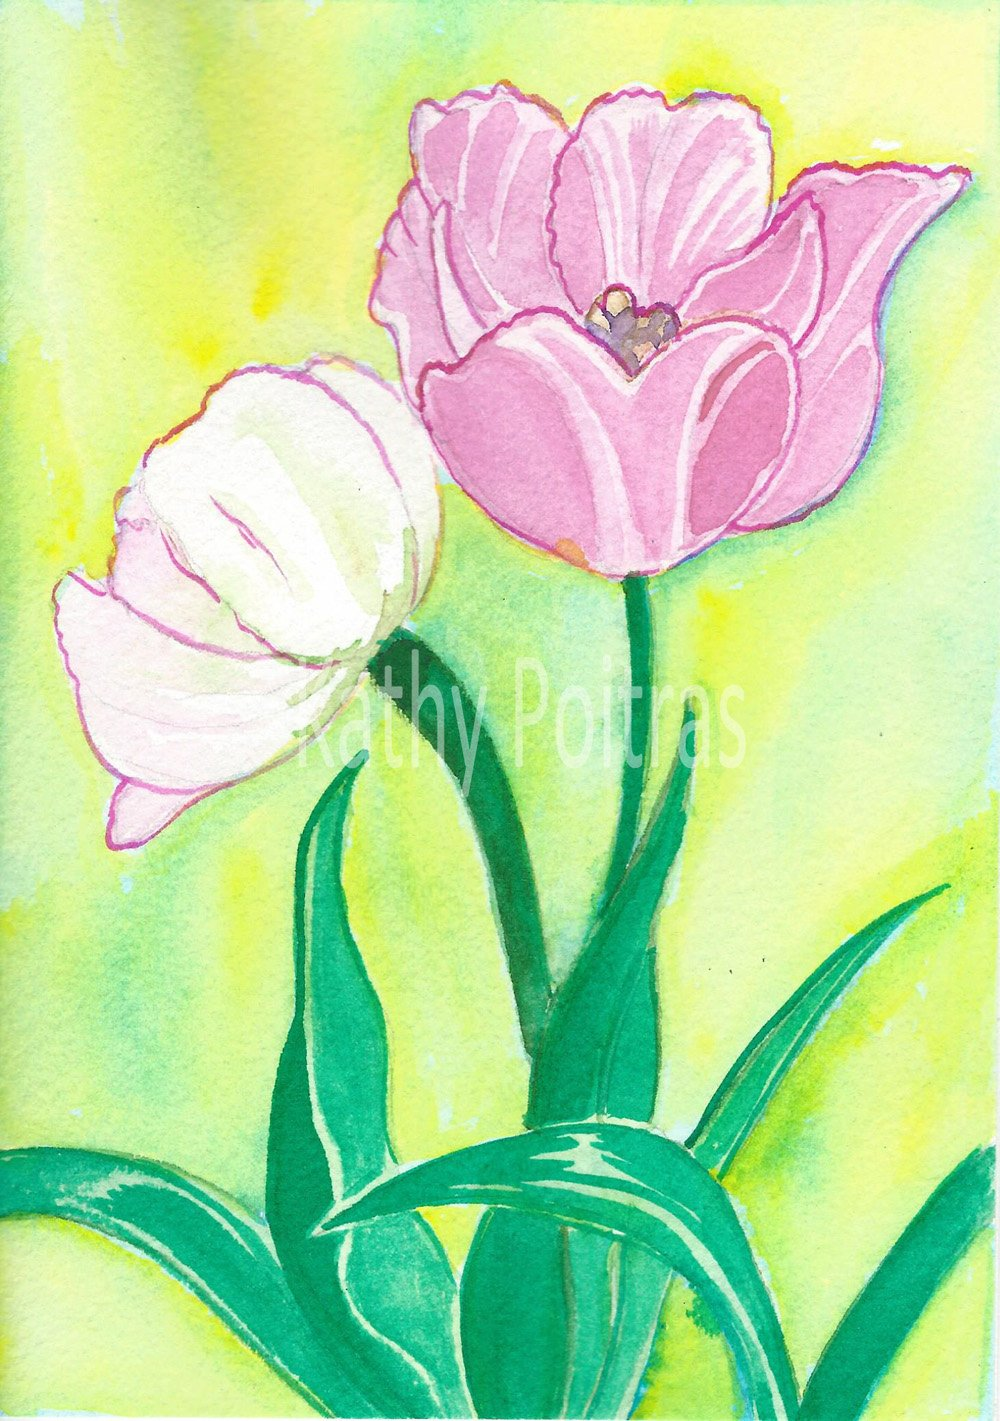 two pink watercolor and ink tulips, one facing forward, one facing backward. More realistic than Kathy Poitras' usual flower paintings